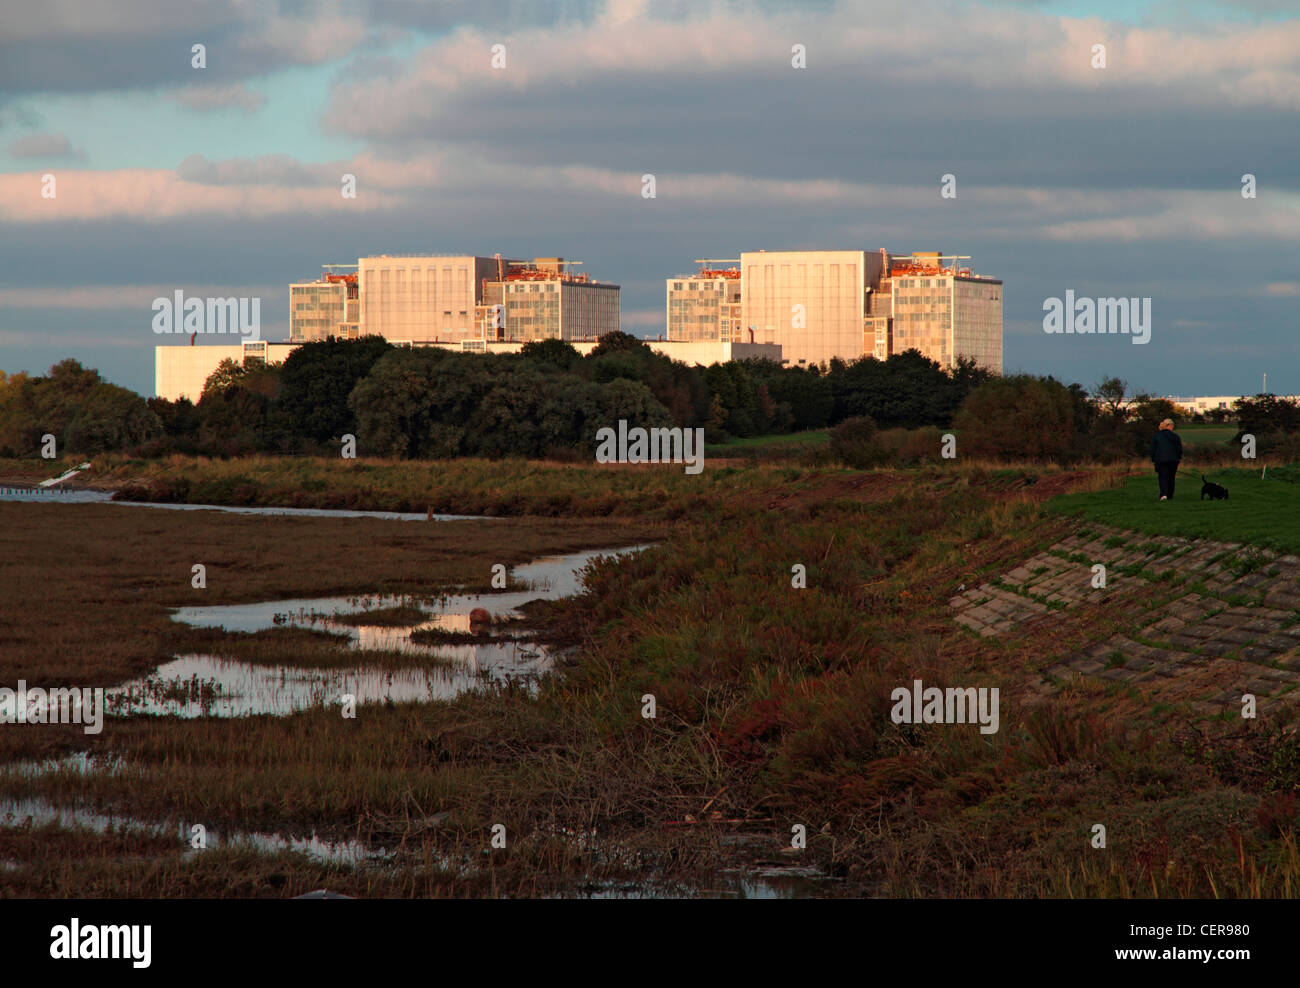 Bradwell nuclear power station, a disused Magnox power station located on the Dengie peninsula at the mouth of the - Stock Image